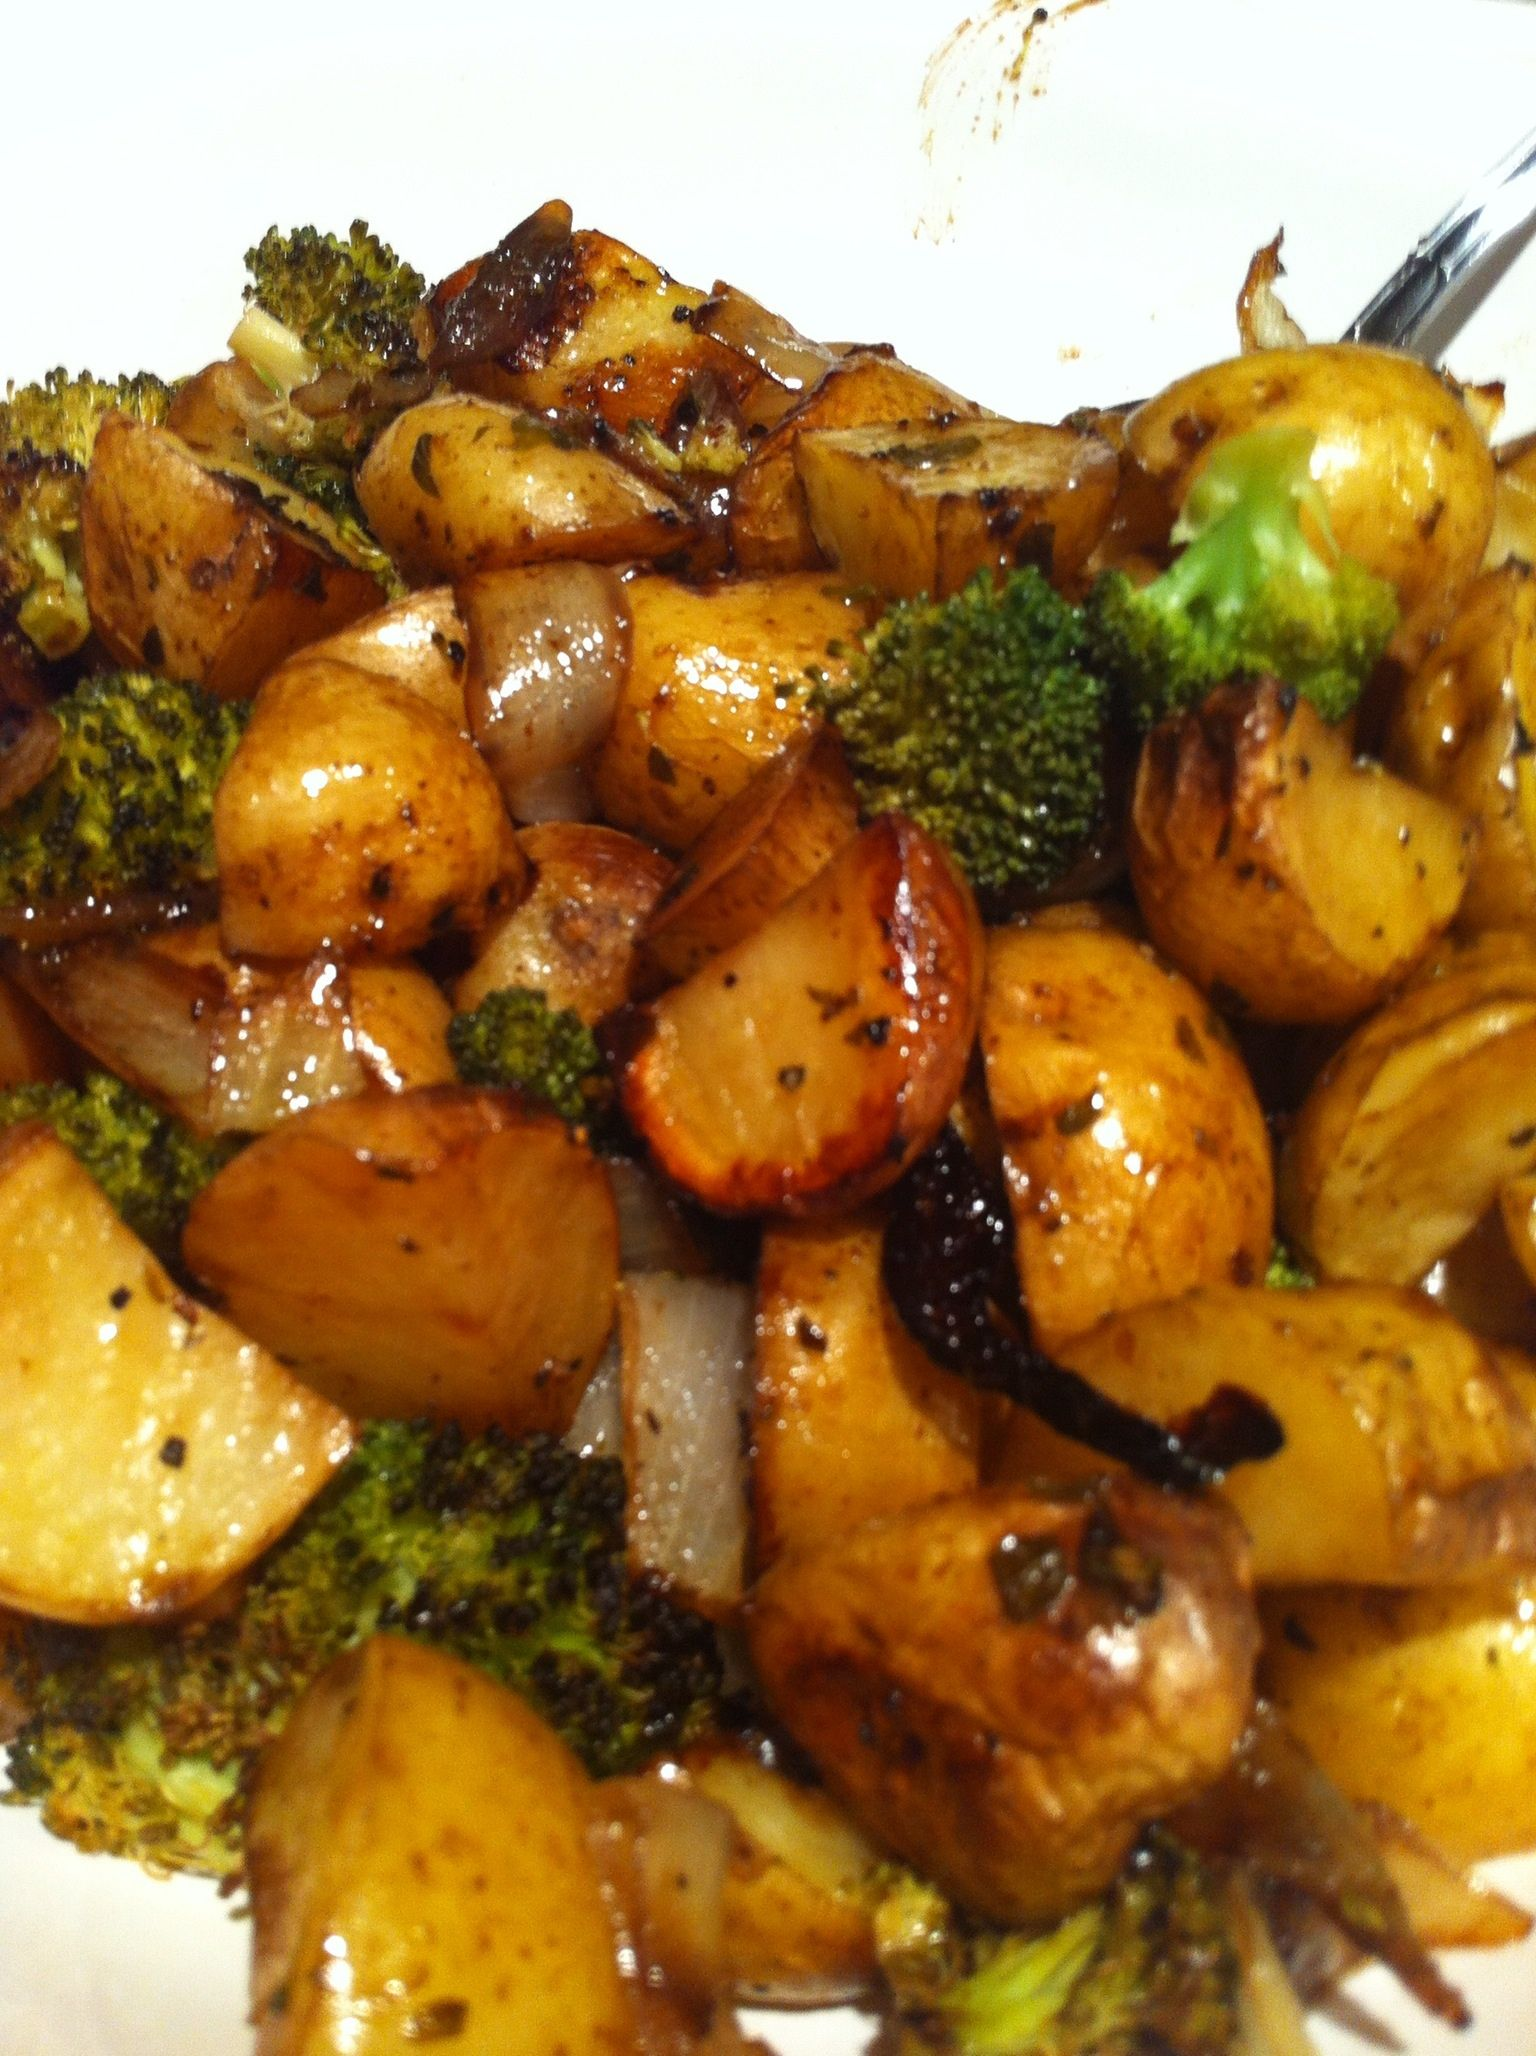 Photo of Roasted Balsamic Potatoes, Onions and Broccoli